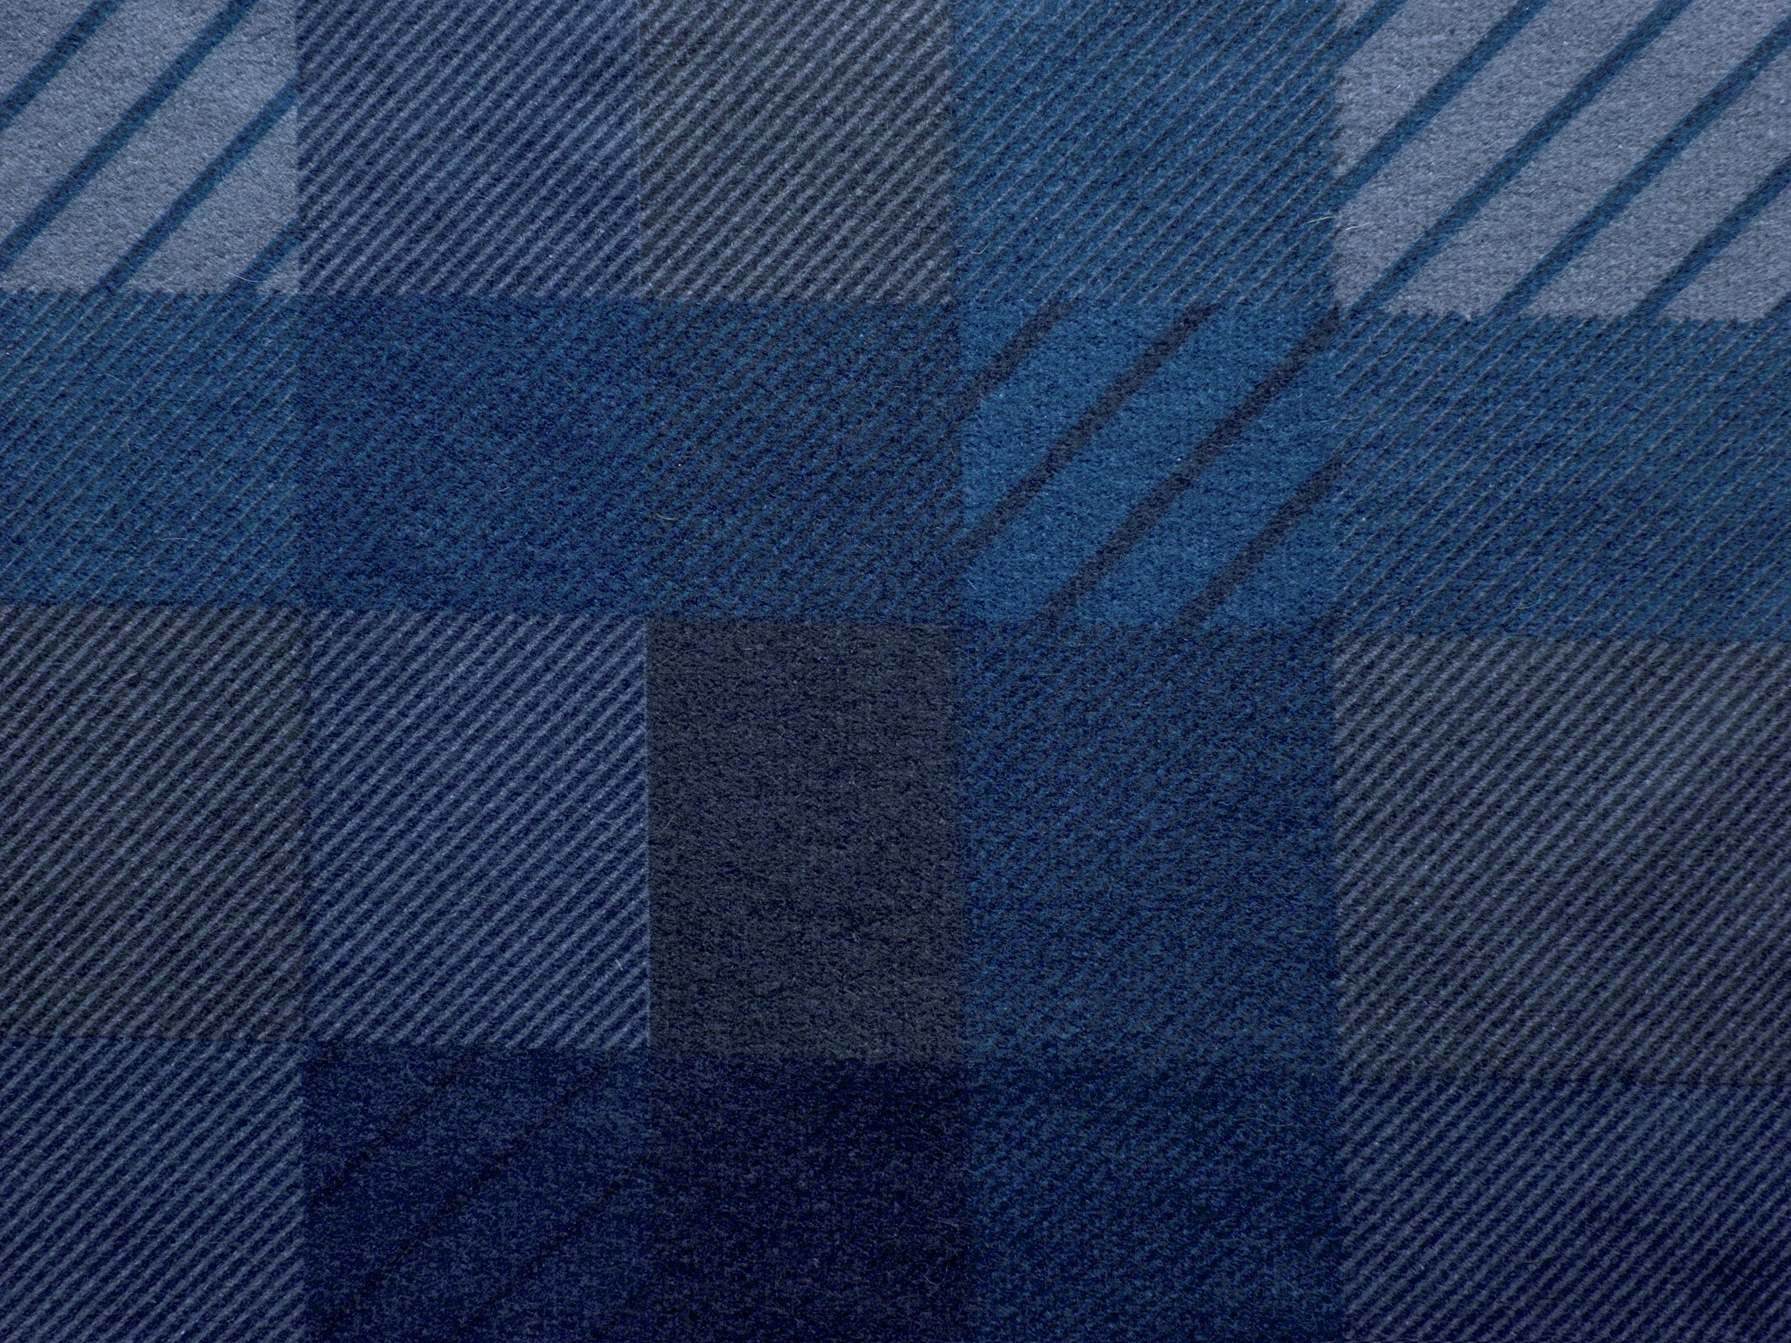 Dark blue patterns plaid fabric texture photohdx for Cloth material